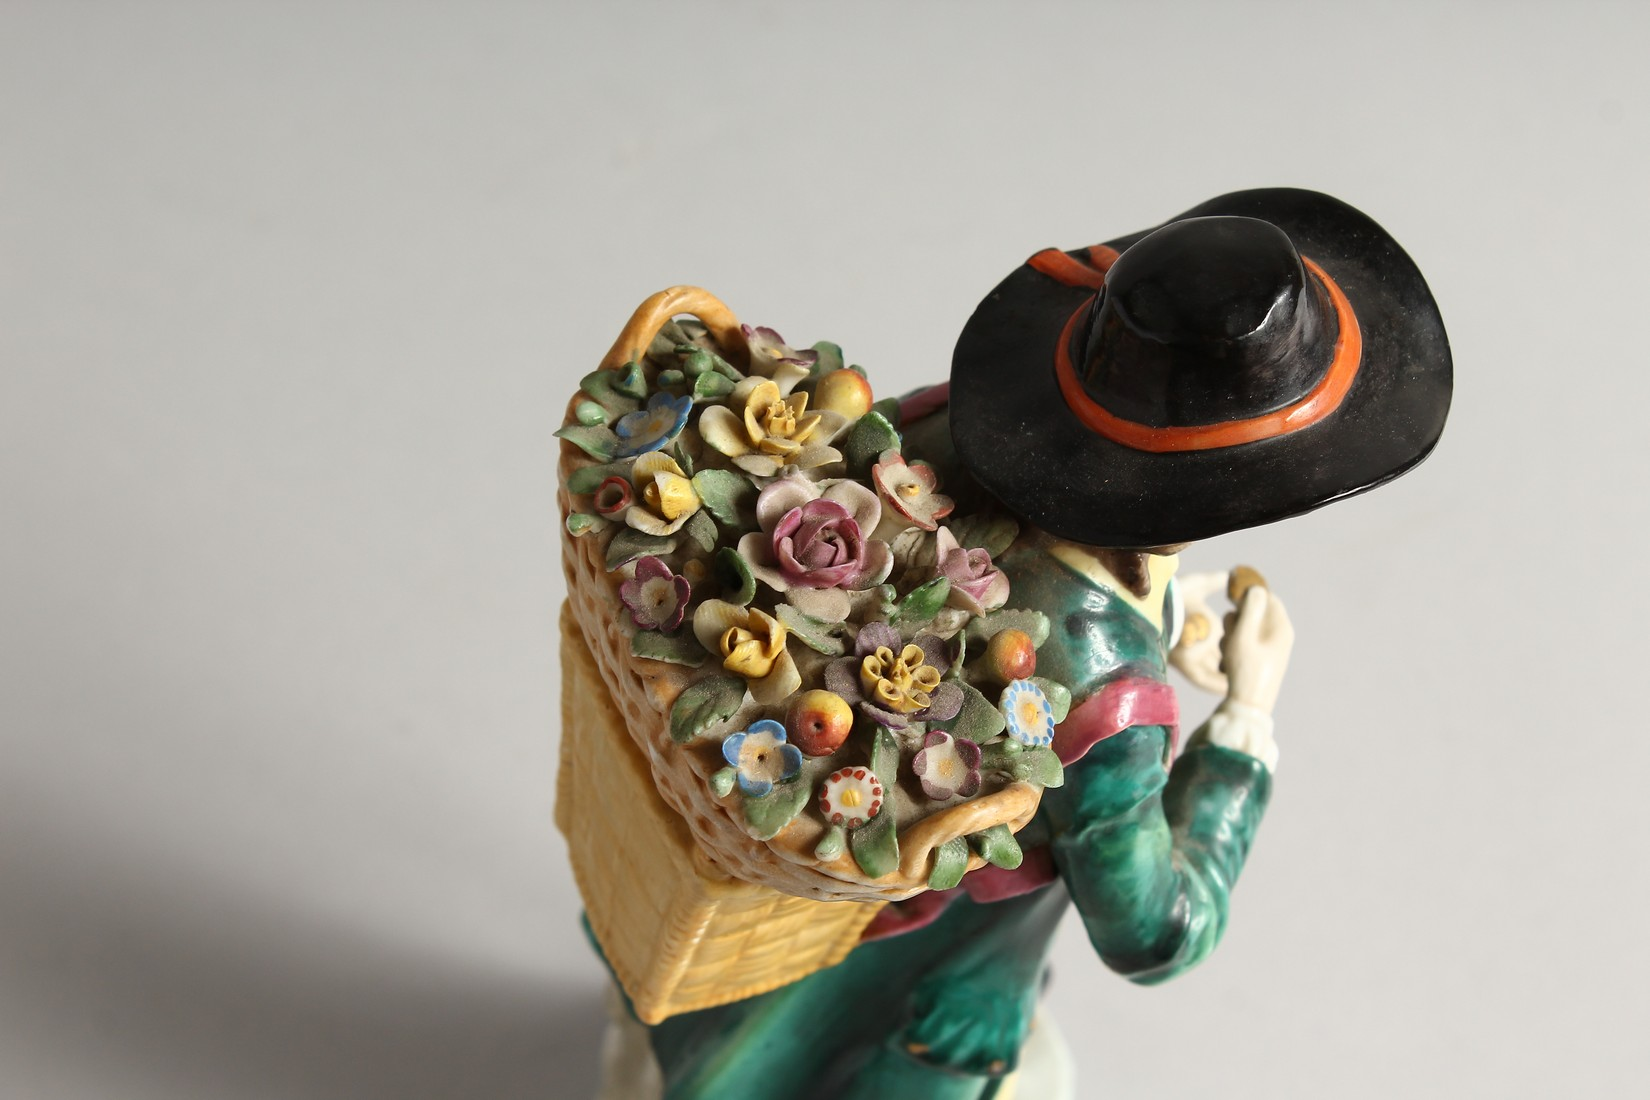 A SAMSON CHELSEA DERRY PORCELAIN FIGURE of a man, a basket of flowers on his back 9ins high. - Image 5 of 6